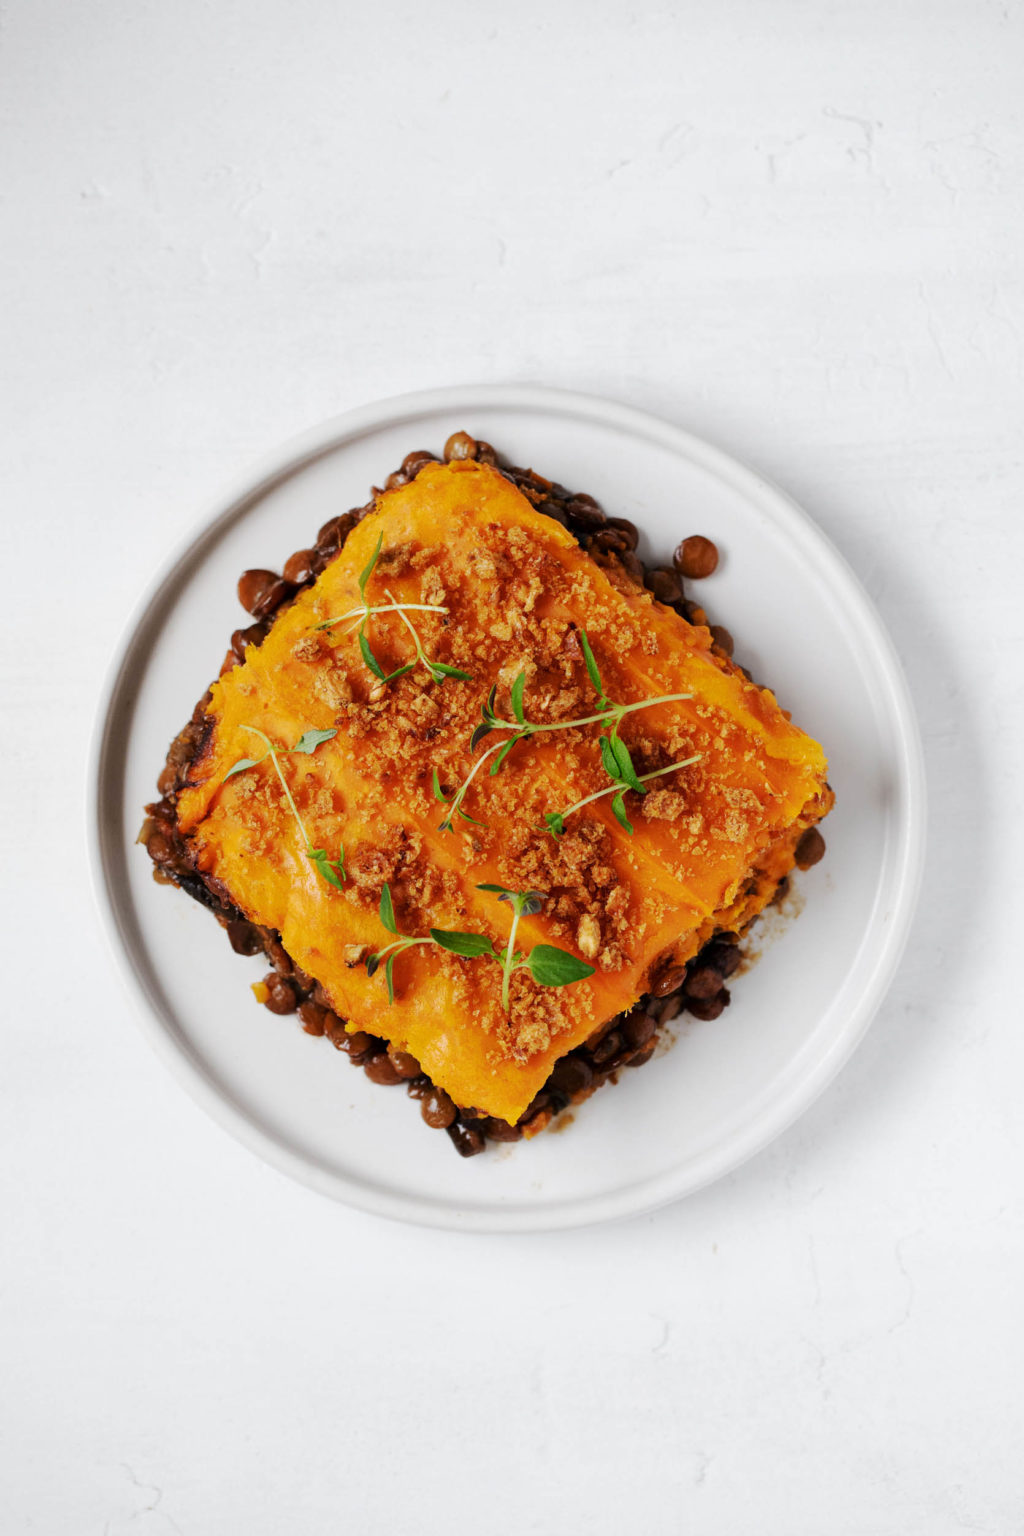 A neatly cut square of lentils, topped with mashed potatoes and garnished with herbs and bread crumbs.